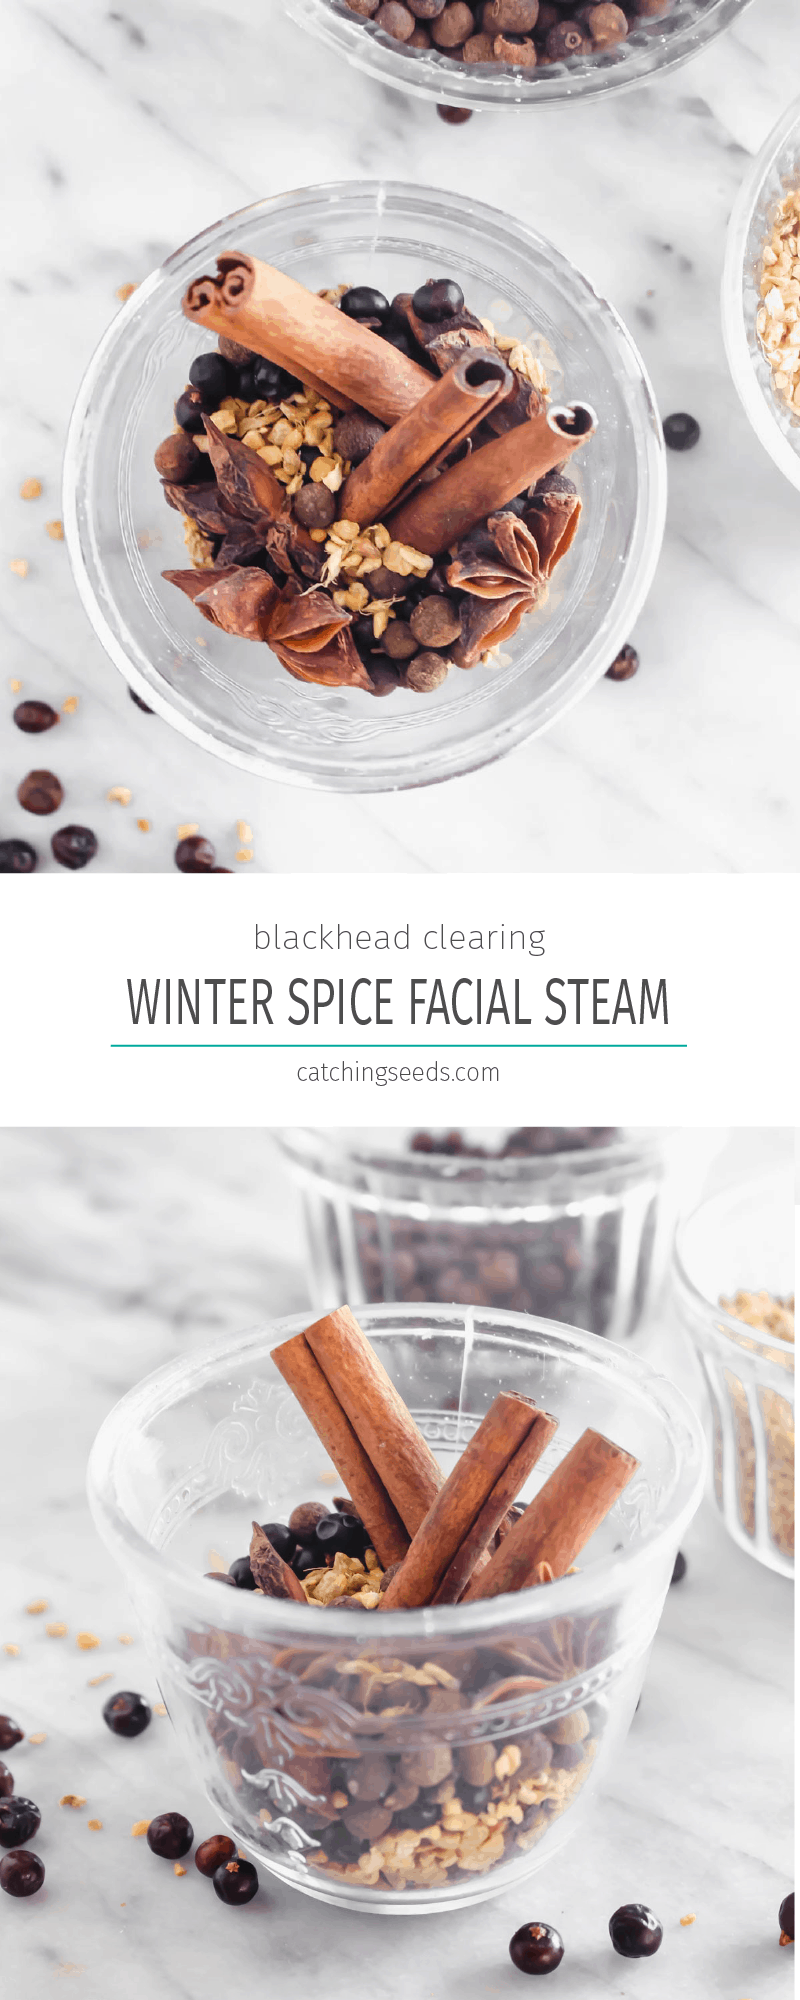 Winter Spice Facial Steam is a 5 ingredient beauty recipe that can unclog pores and get rid of blackheads while smelling and feeling like a spa relaxing experience. | CatchingSeeds.com